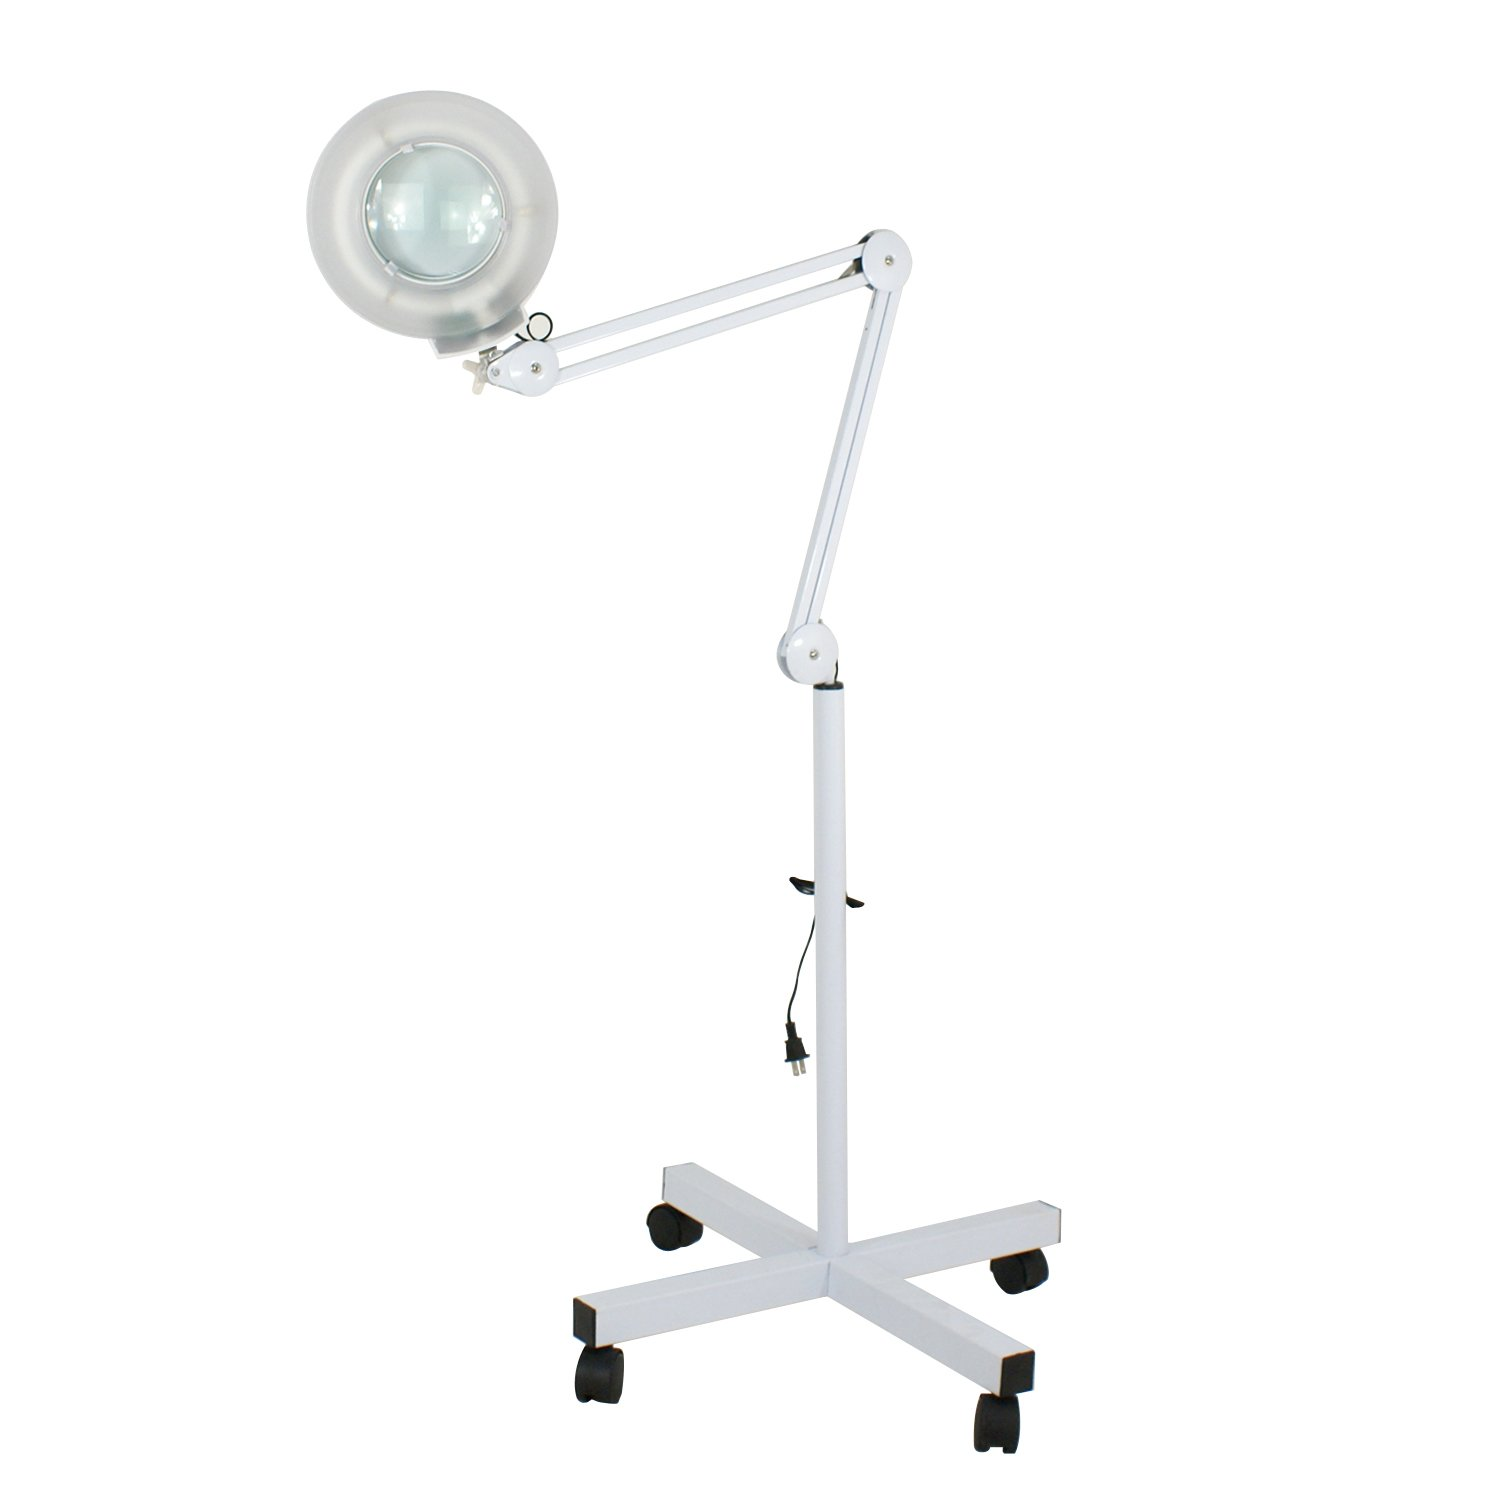 5X Magnifying Lamp Facial Magnifier Lamp LED Glass Lens - Adjustable Rolling Floor Stand Swivel Arm For Salon Beauty Manicure Tattoo Skincare Equipment